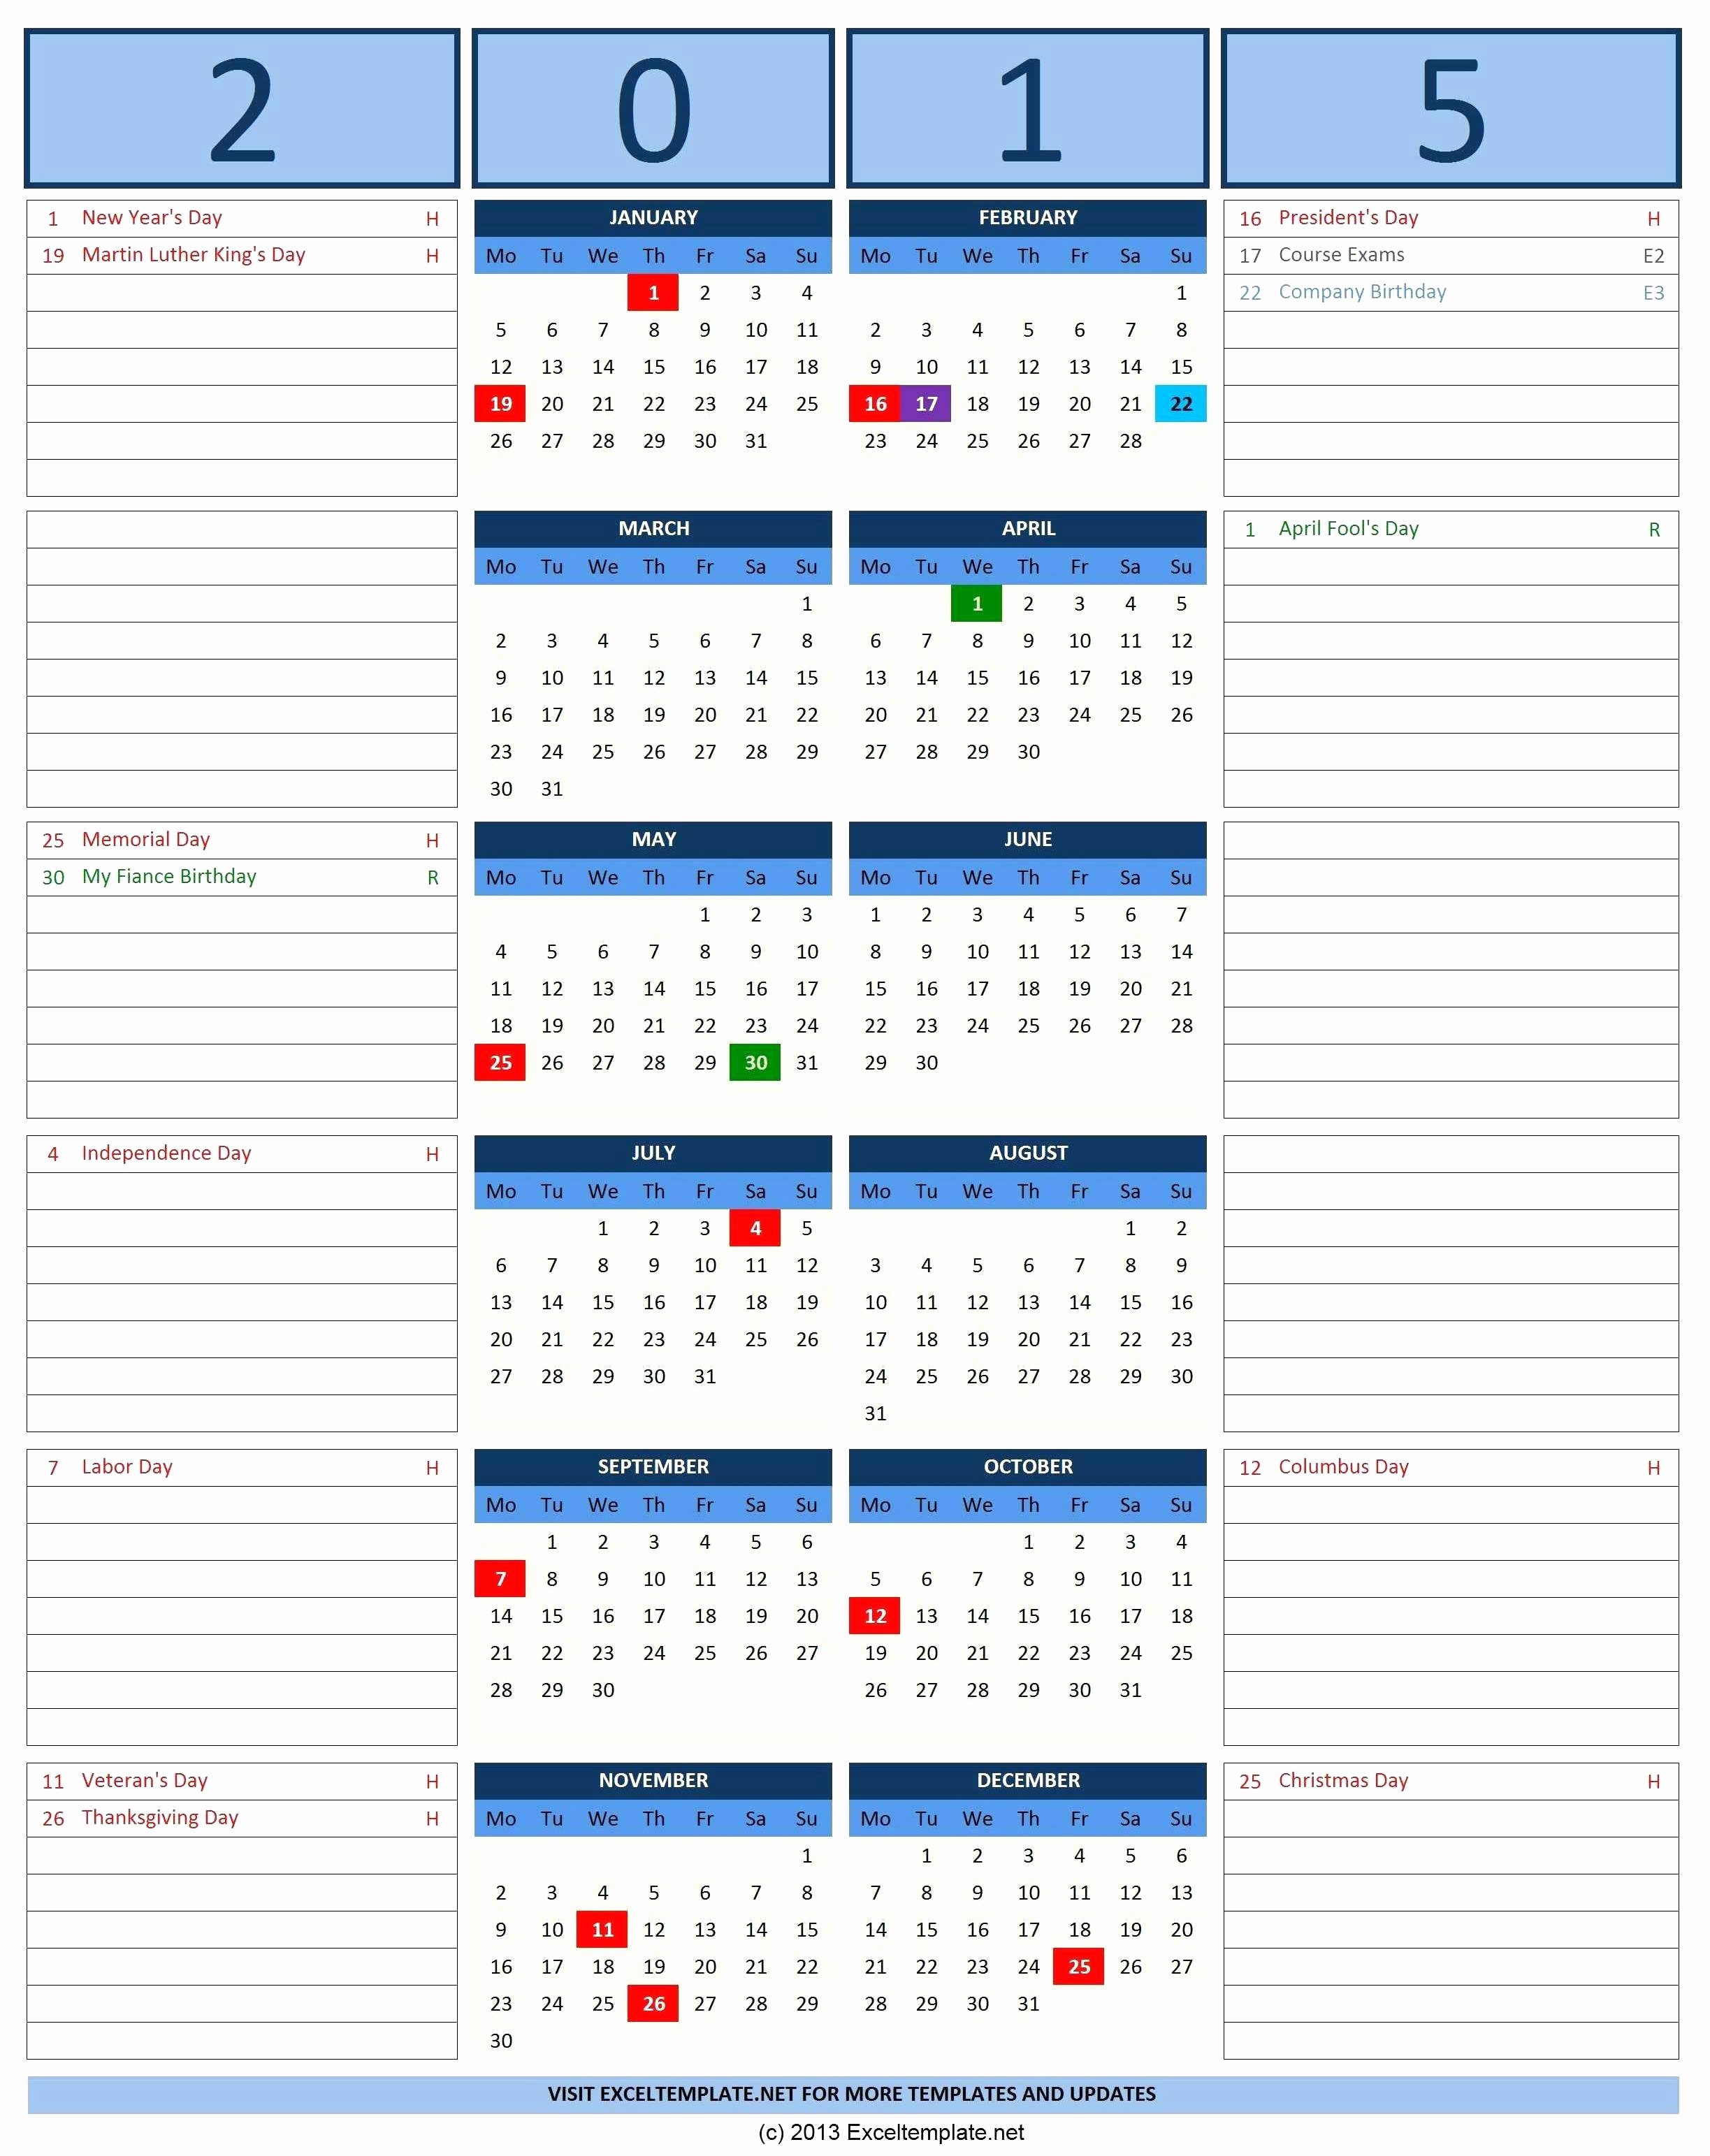 Calendar Of events Template Word Lovely Template Calendar events Template Word